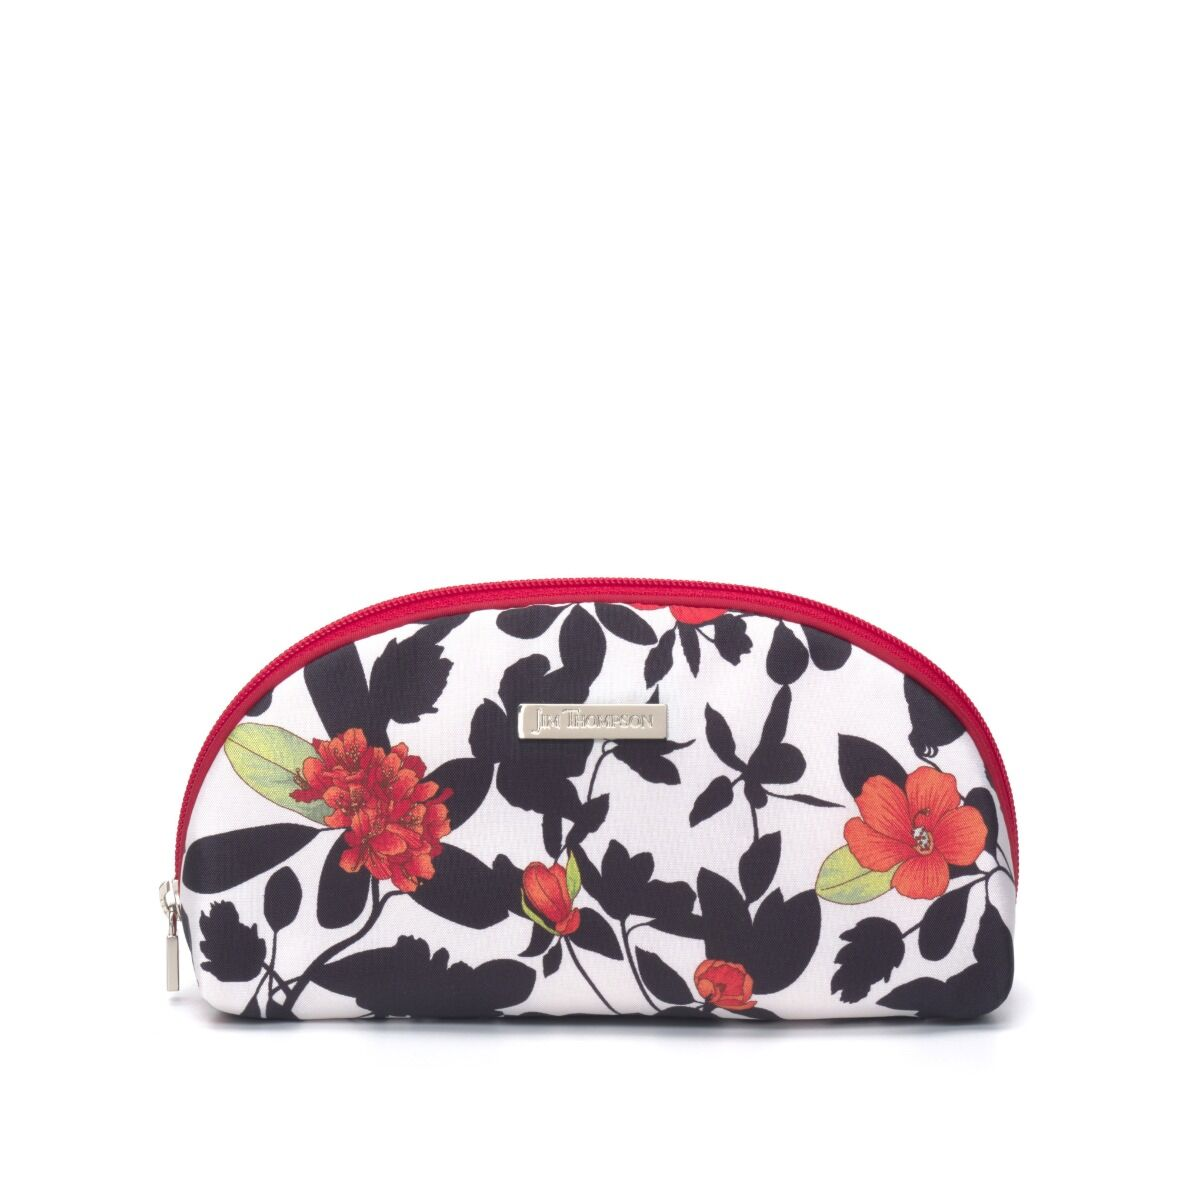 Floral  Large Silk Cosmetic Case - Red